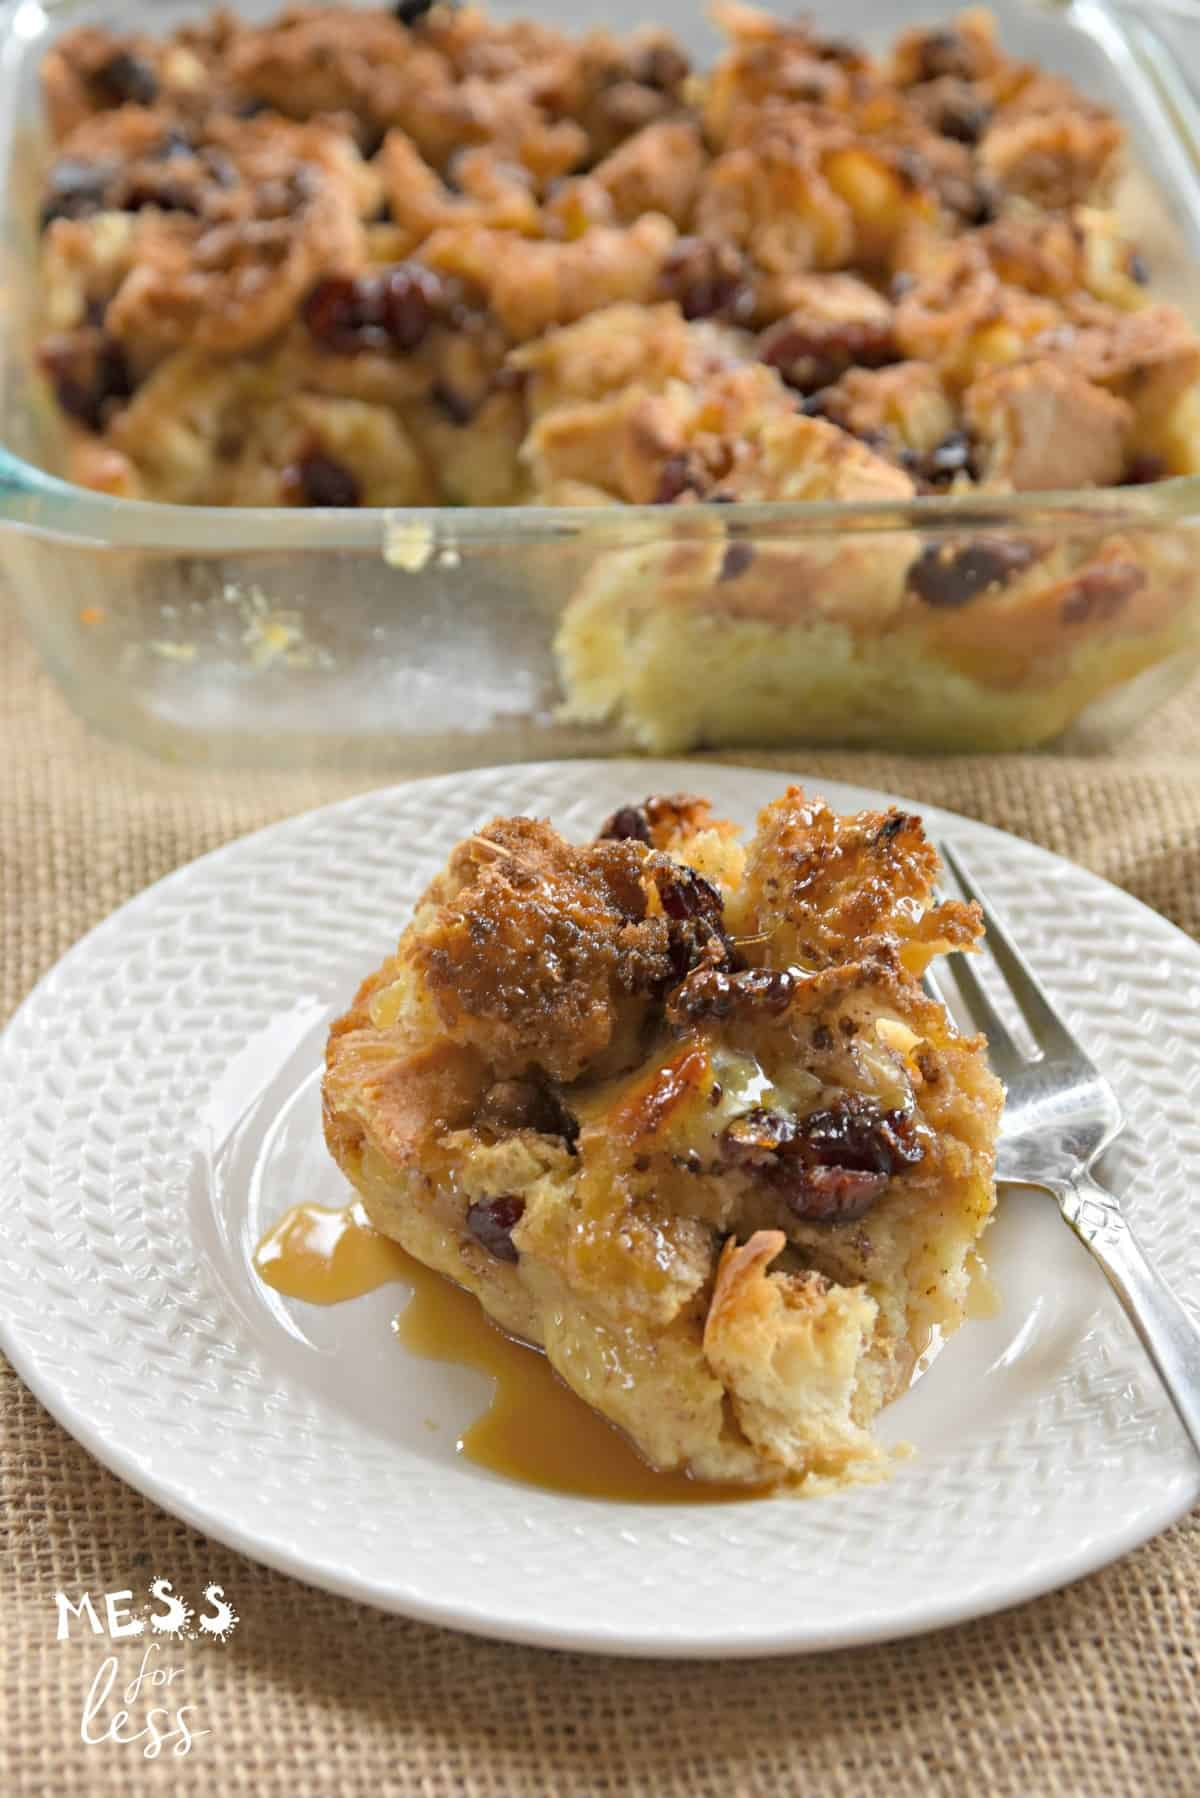 Bread Pudding Recipe - Mess for Less